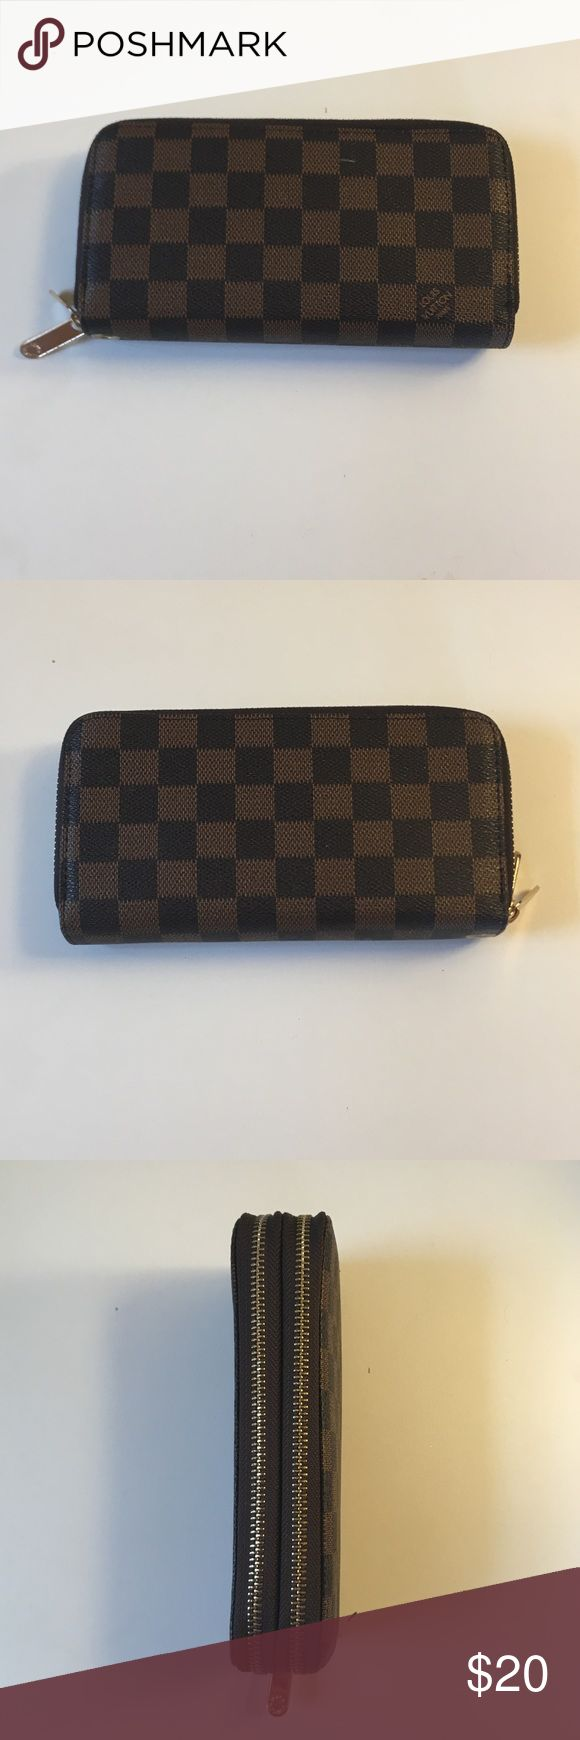 Imitation LV Wallet My mom bought me this, it's obviously not a real Louis Vuitton Wallet but it's beautiful and great quality! If you like the pattern of LV but can't afford the real one here is new Wallet for you 😊. Brand new, comes with attachable wrist strap. Bags Wallets